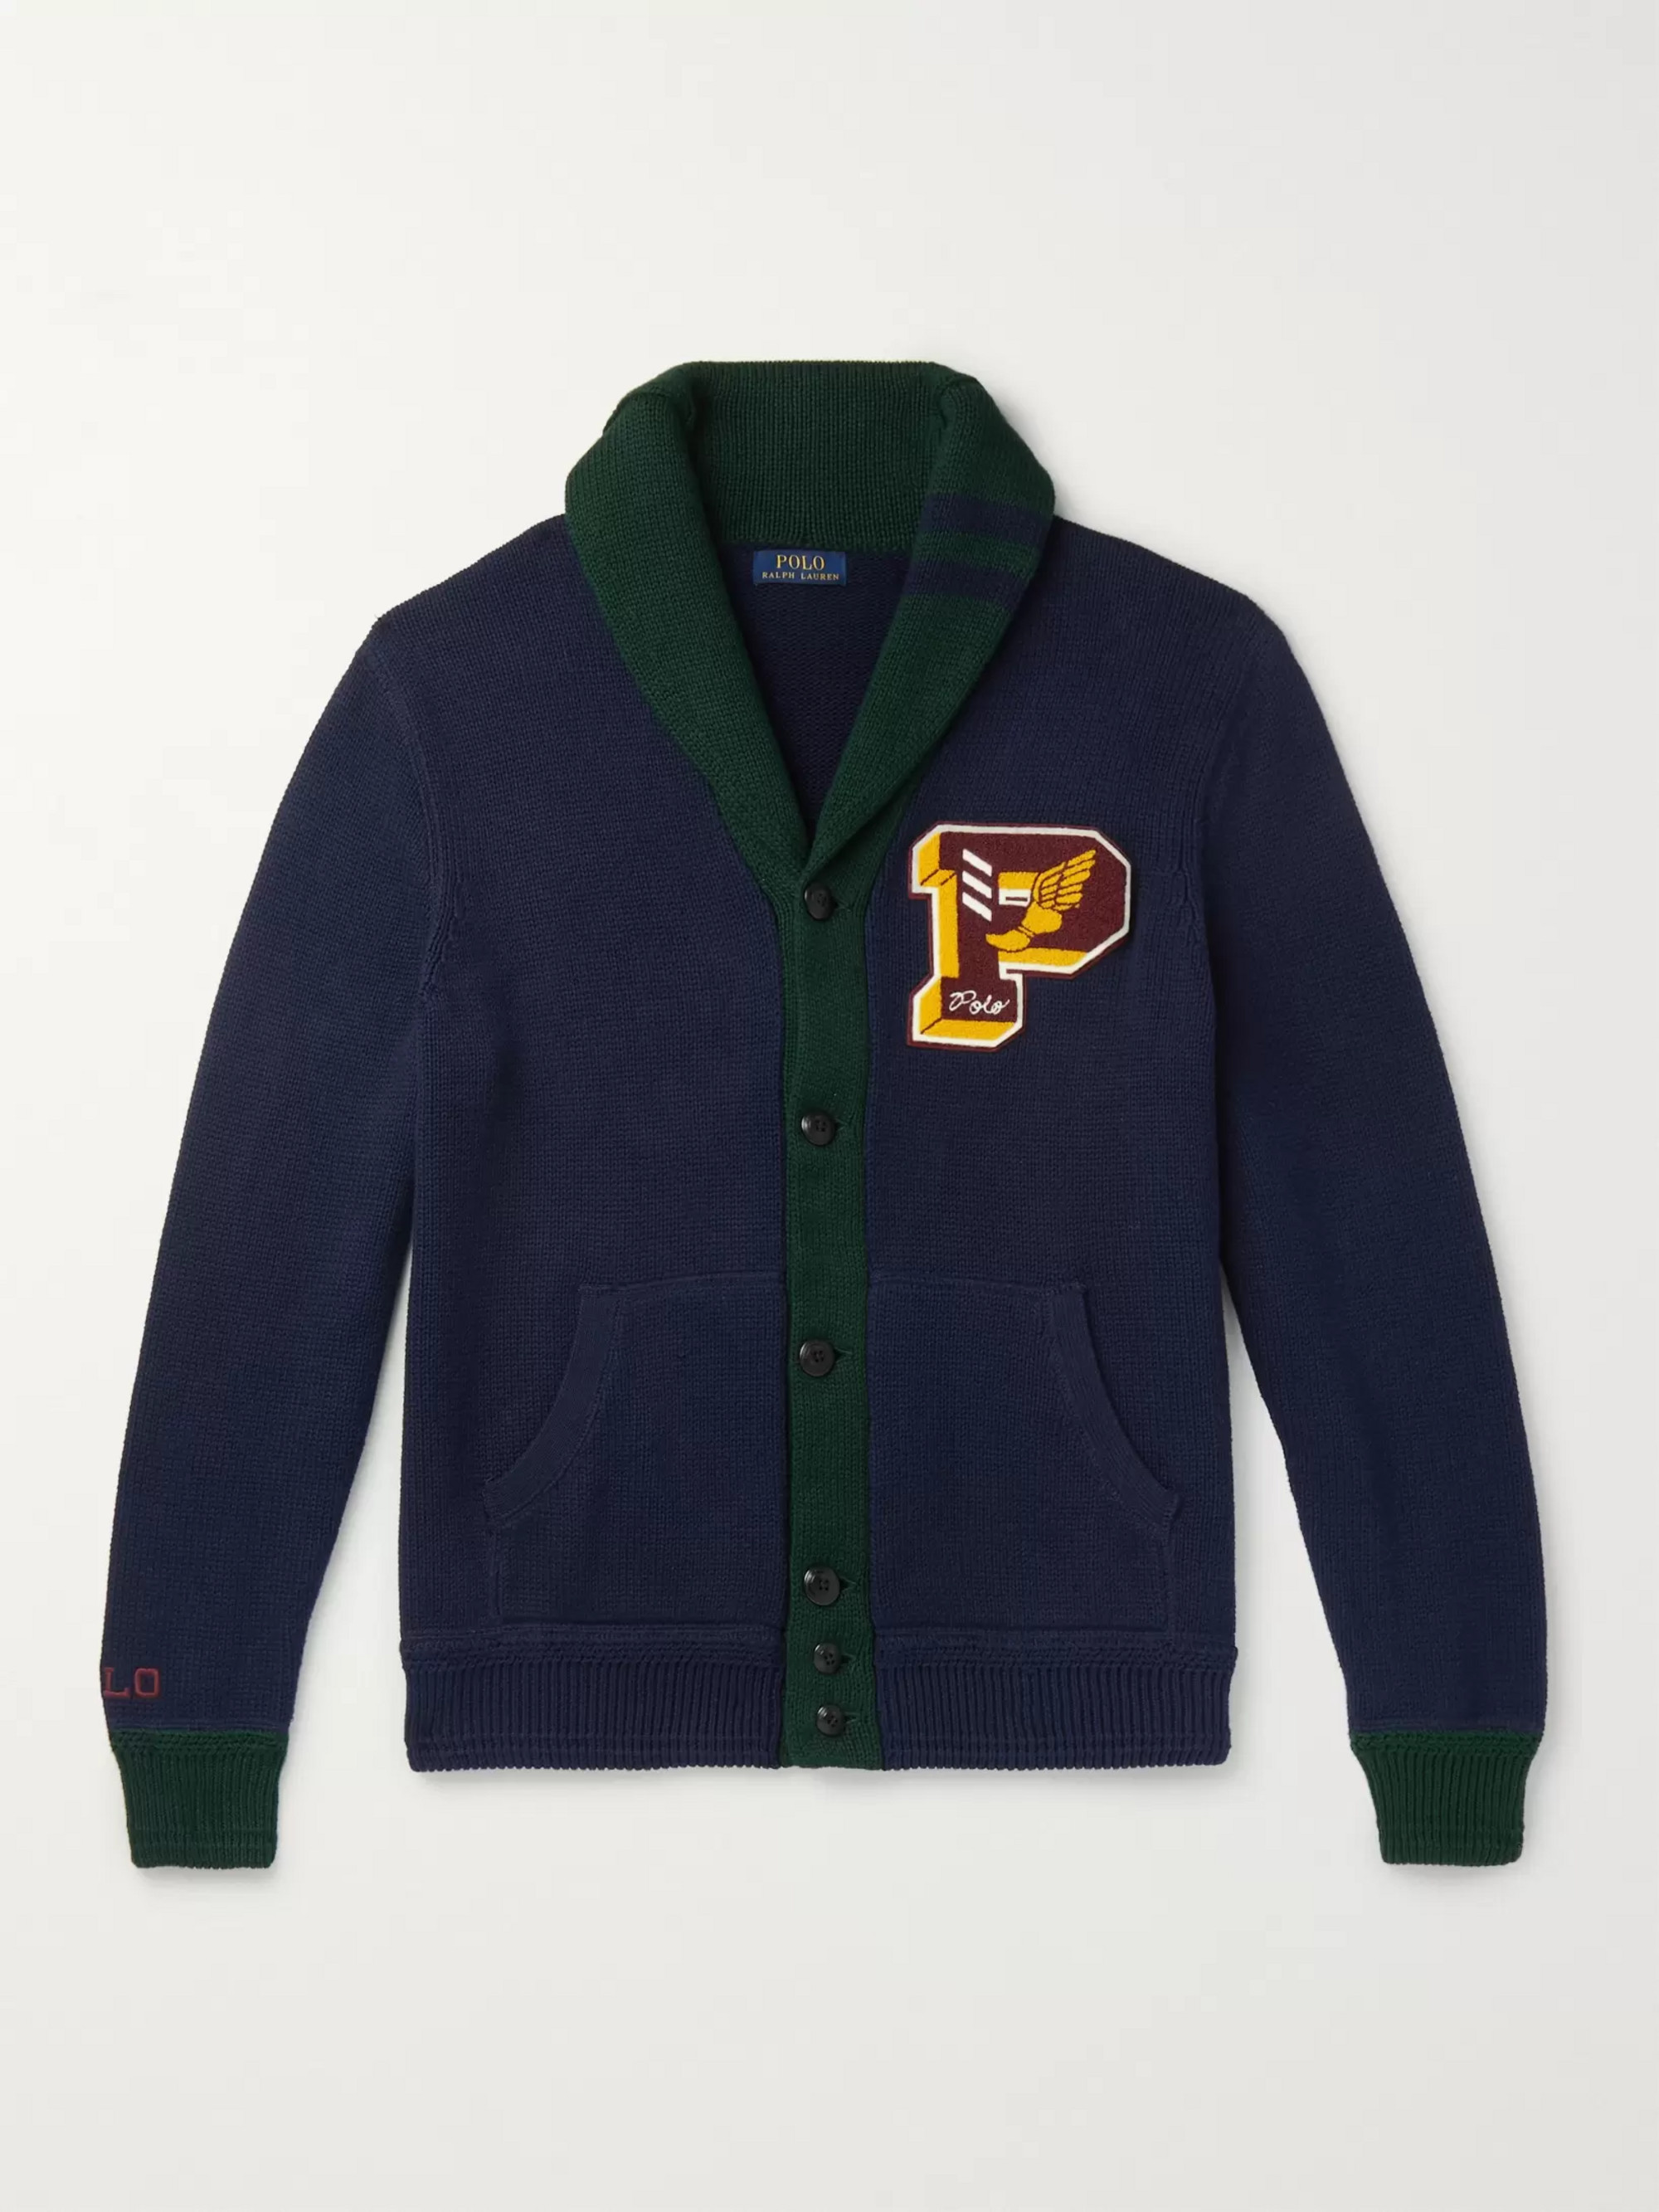 Polo Ralph Lauren Shawl-Collar Logo-Appliquéd Cotton Cardigan